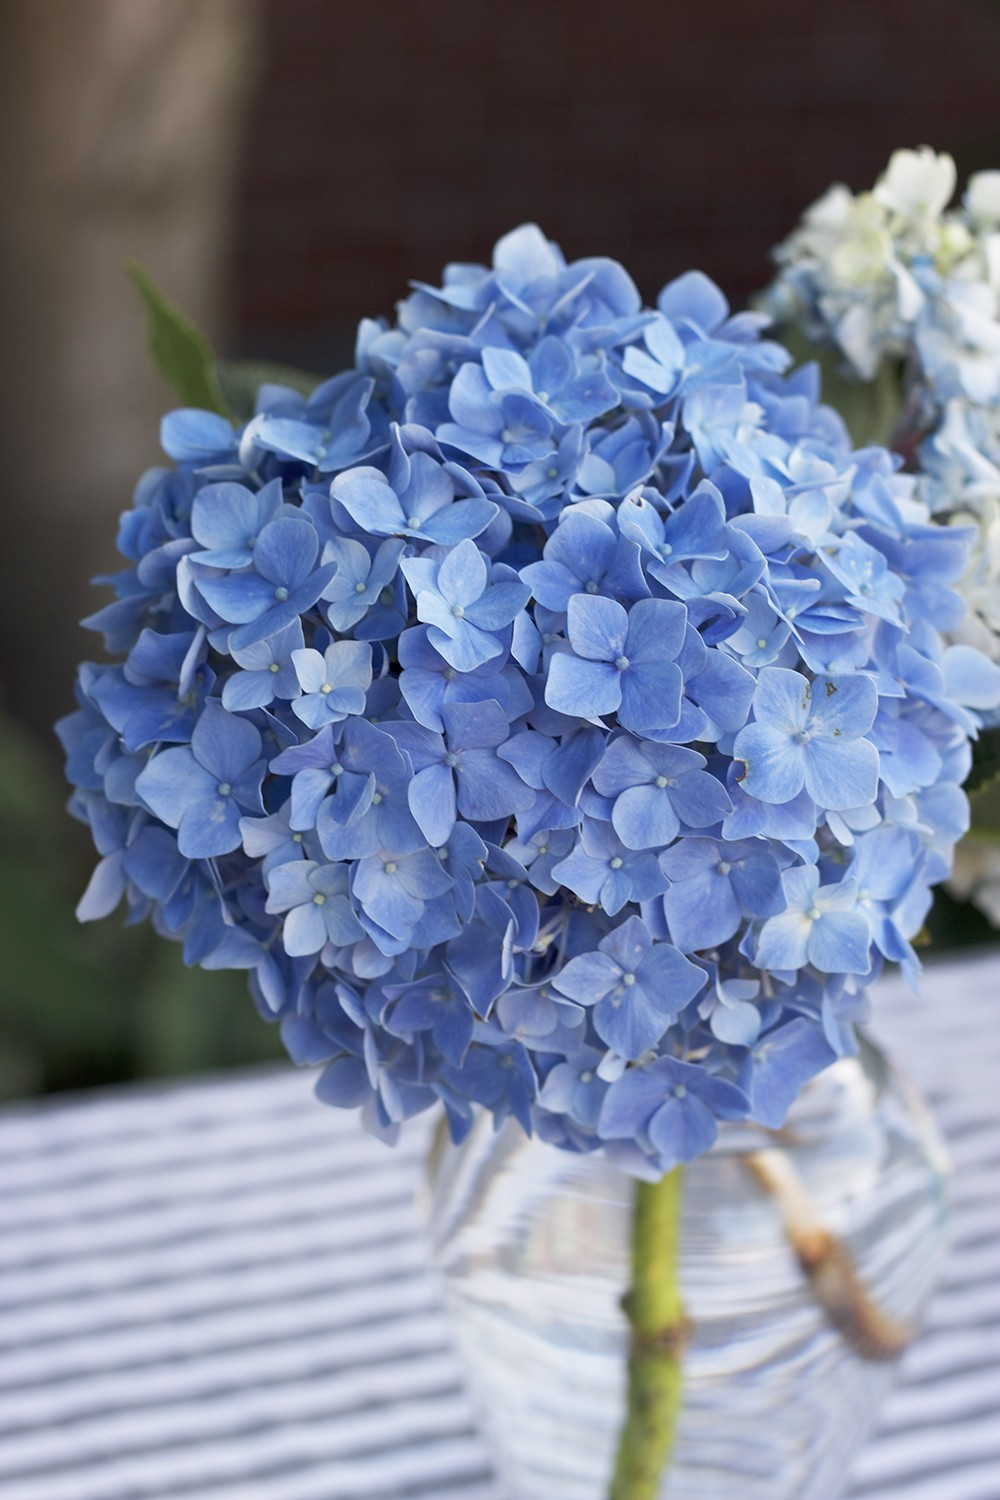 blue and white hydrangea flower decorations for a lamb themed baby shower